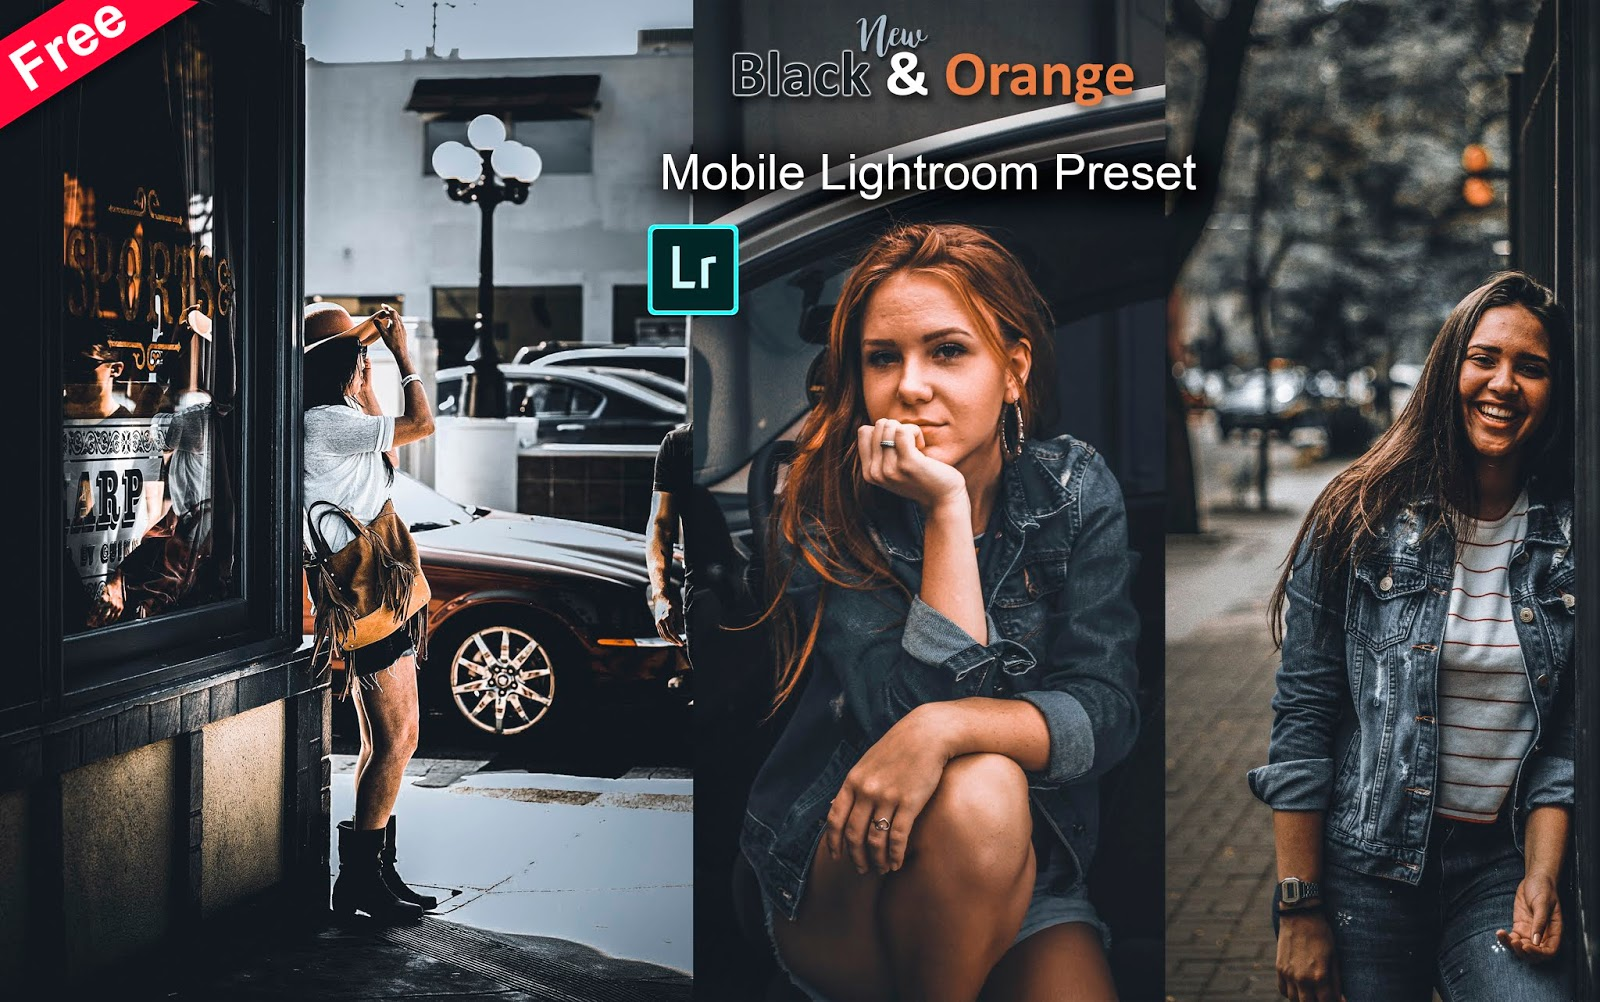 Download New Black & Orange Mobile Lightroom Preset for Free | How to Edit Your Photos with Black & Orange Effect in Mobile Lightroom App